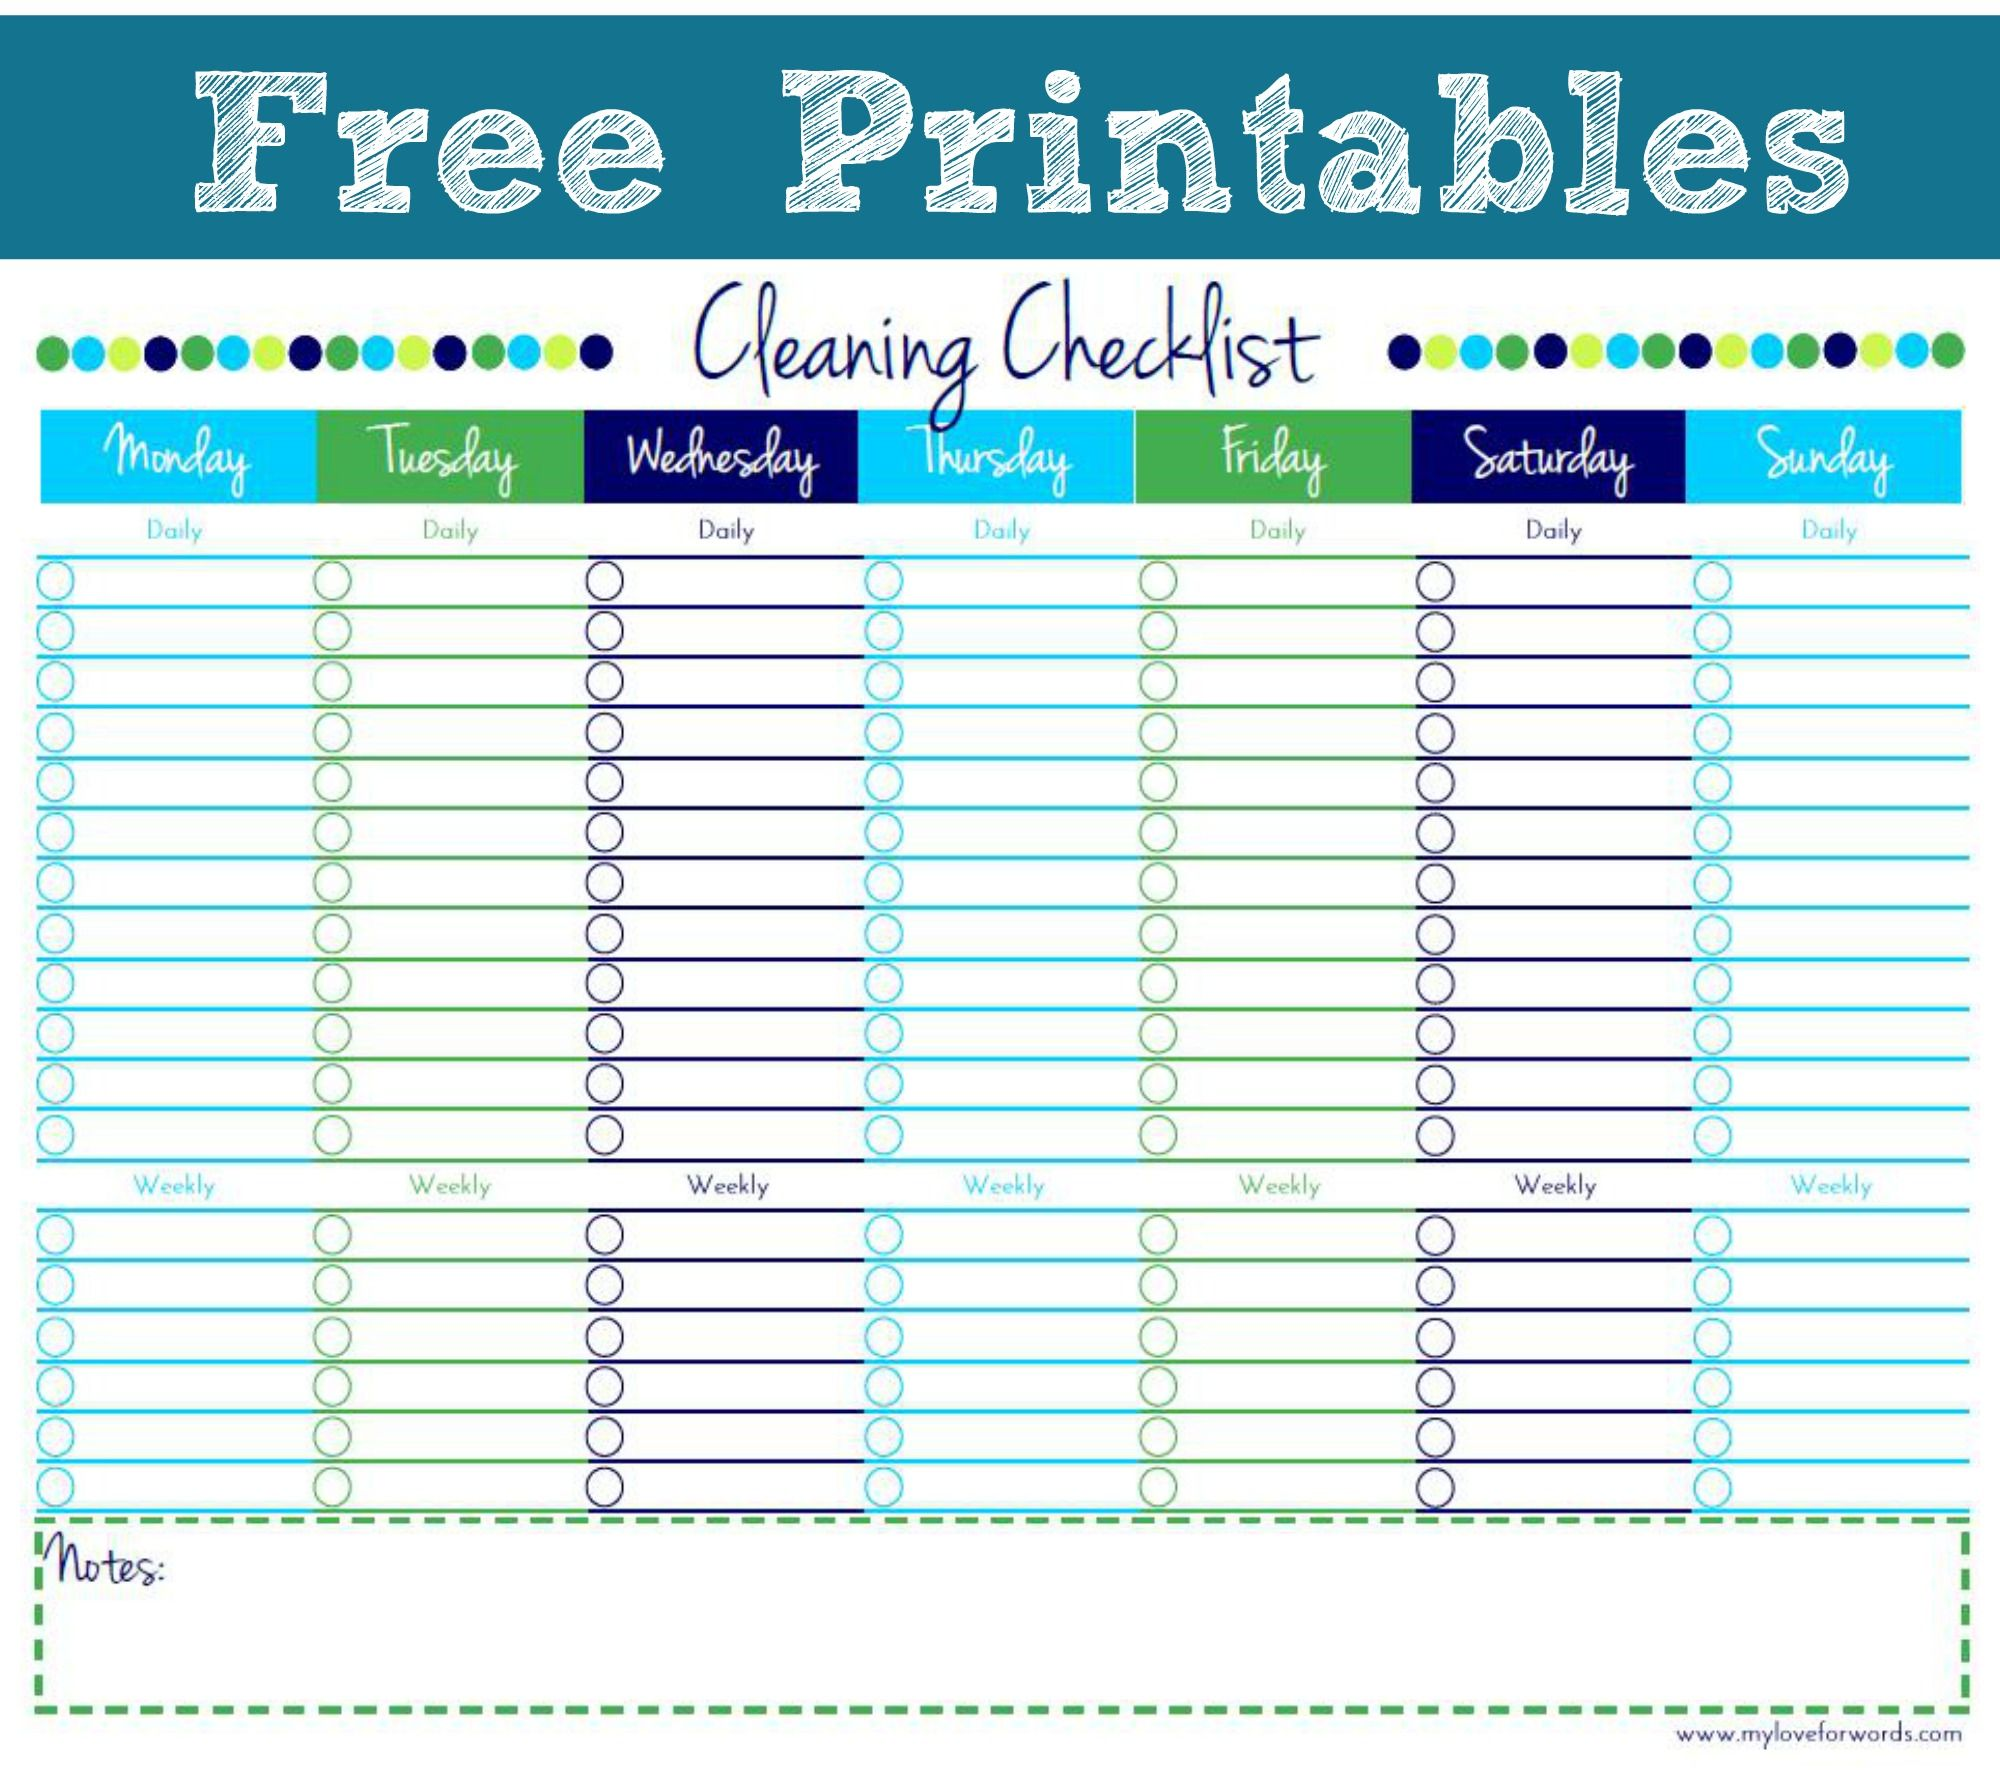 Cleaning Checklist Free Printable  Cleaning Checklist Free